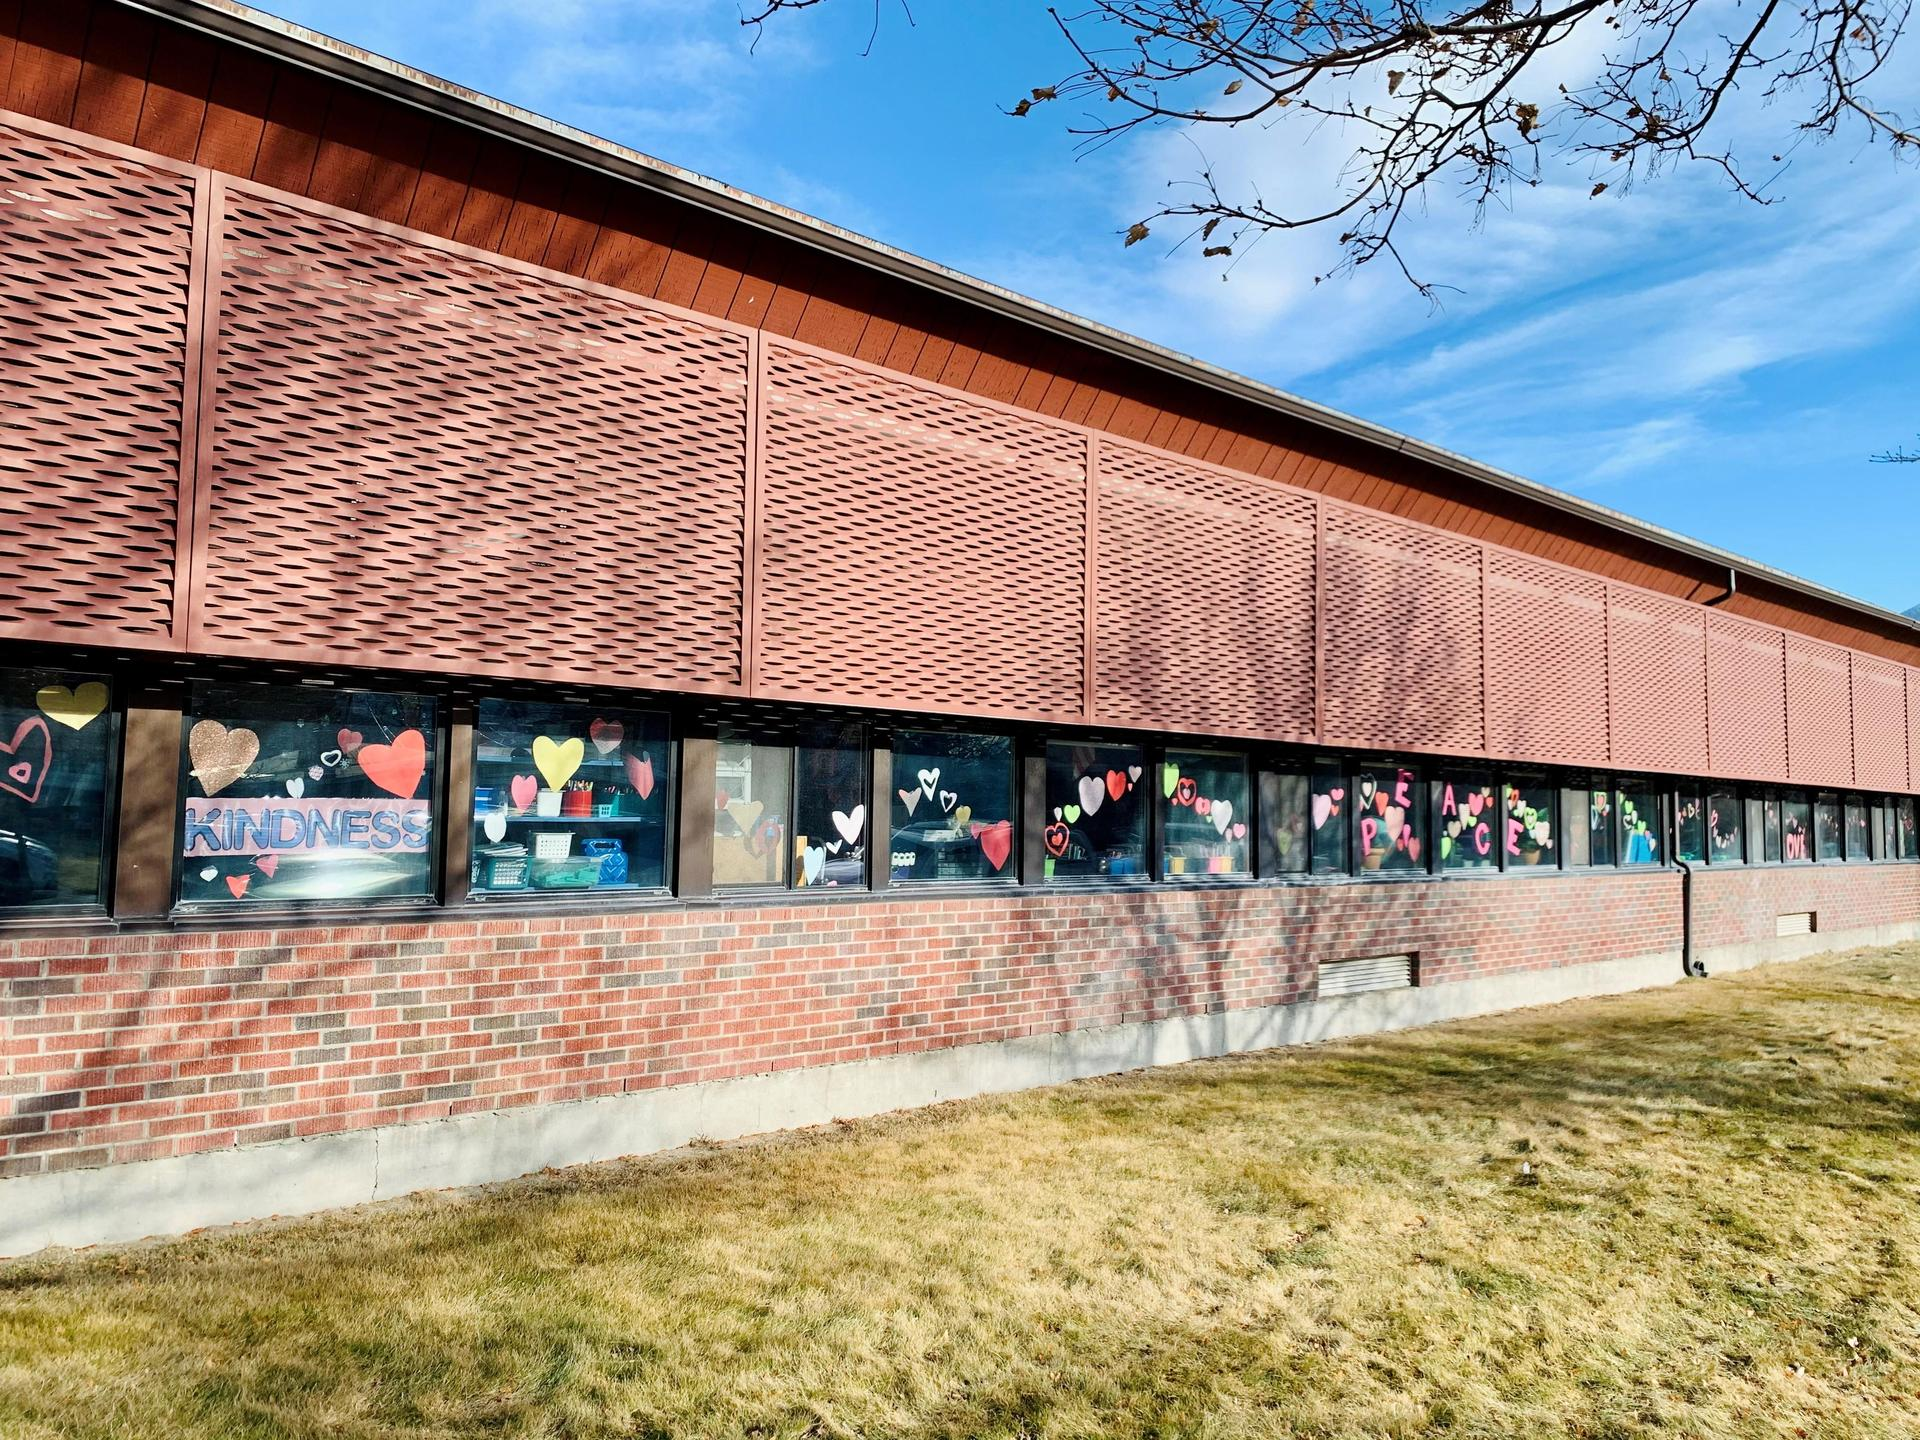 Windows decorated on outside of school building